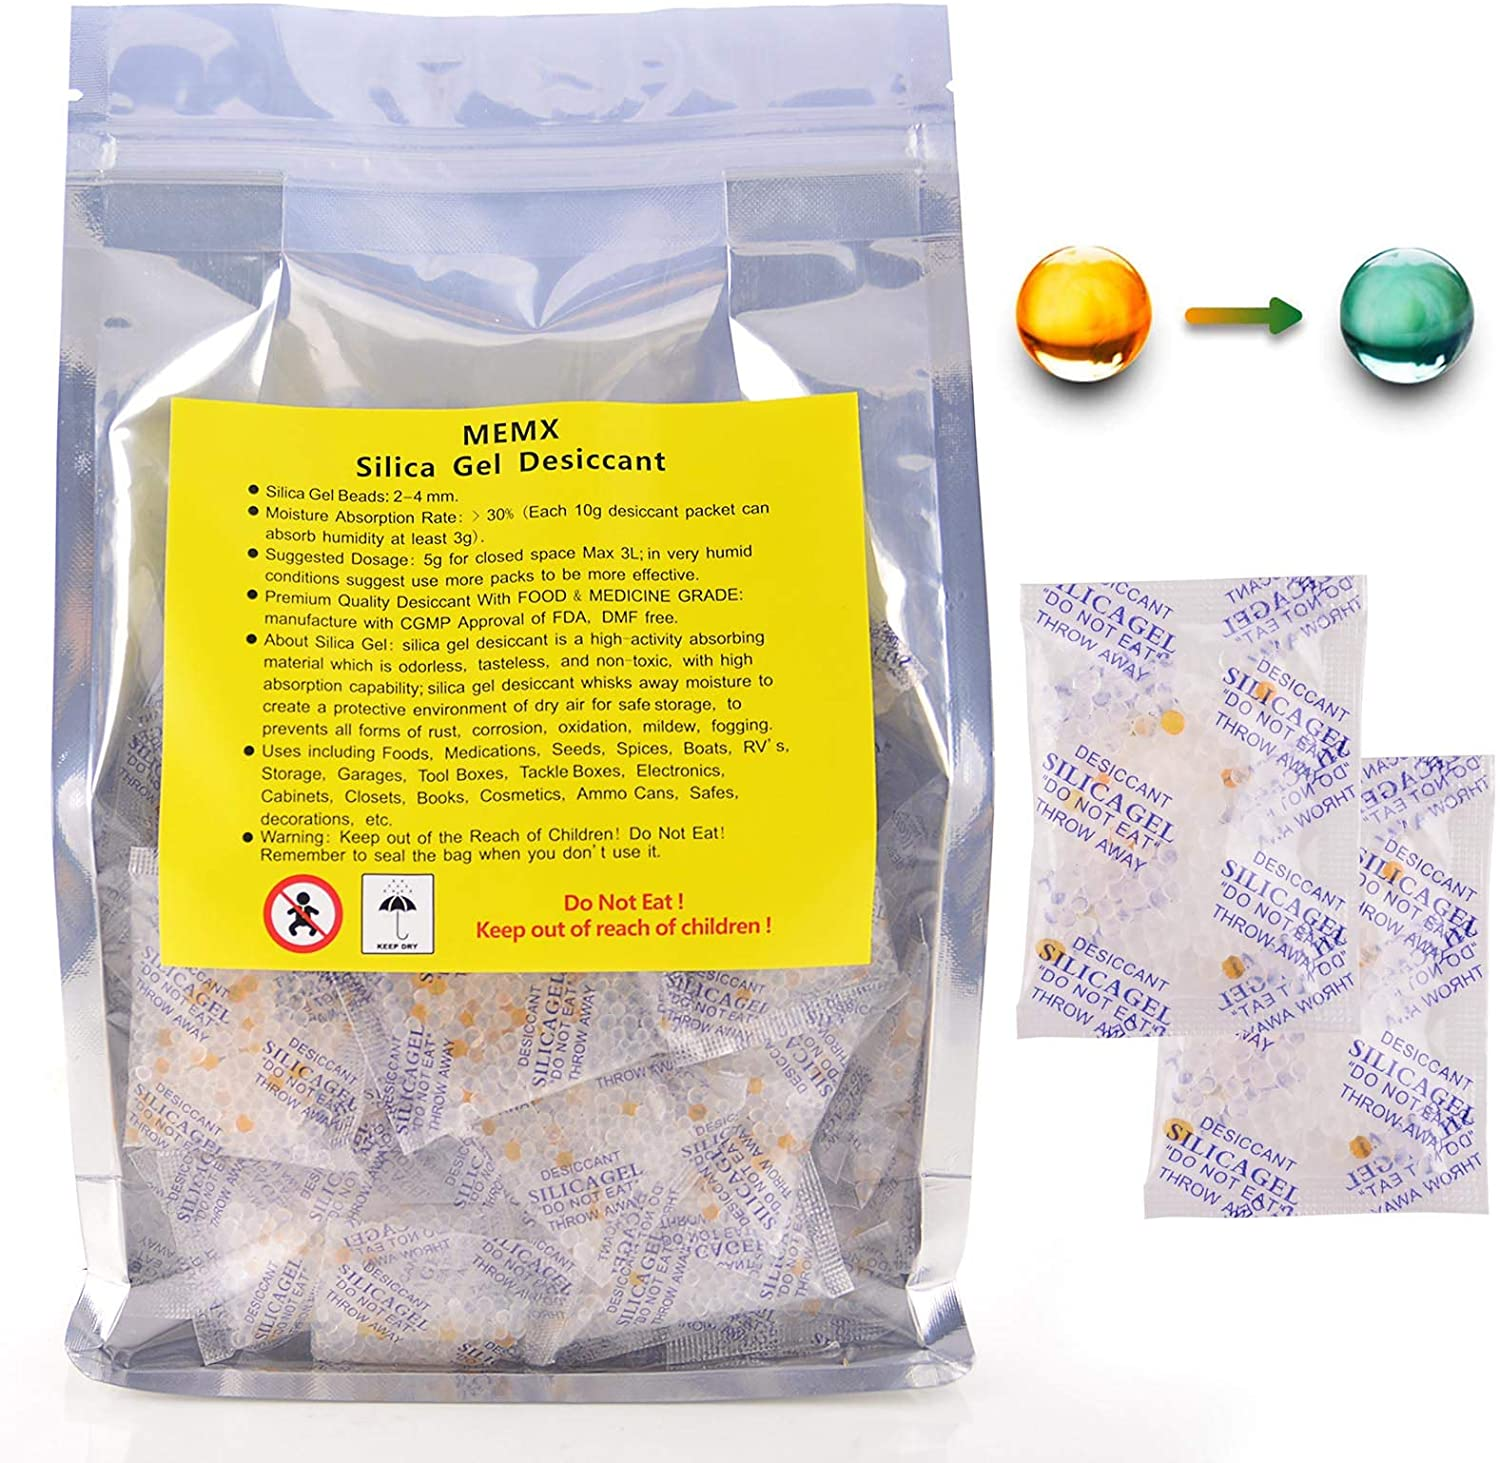 Silica Gel Desiccants Packets Dehumidifiers Fast Reactivate Food Grade Moisture Absorber Bags with Indicating Beads for Closet Gun Safes Basement Storage.(100 Packs, 5 Gram)